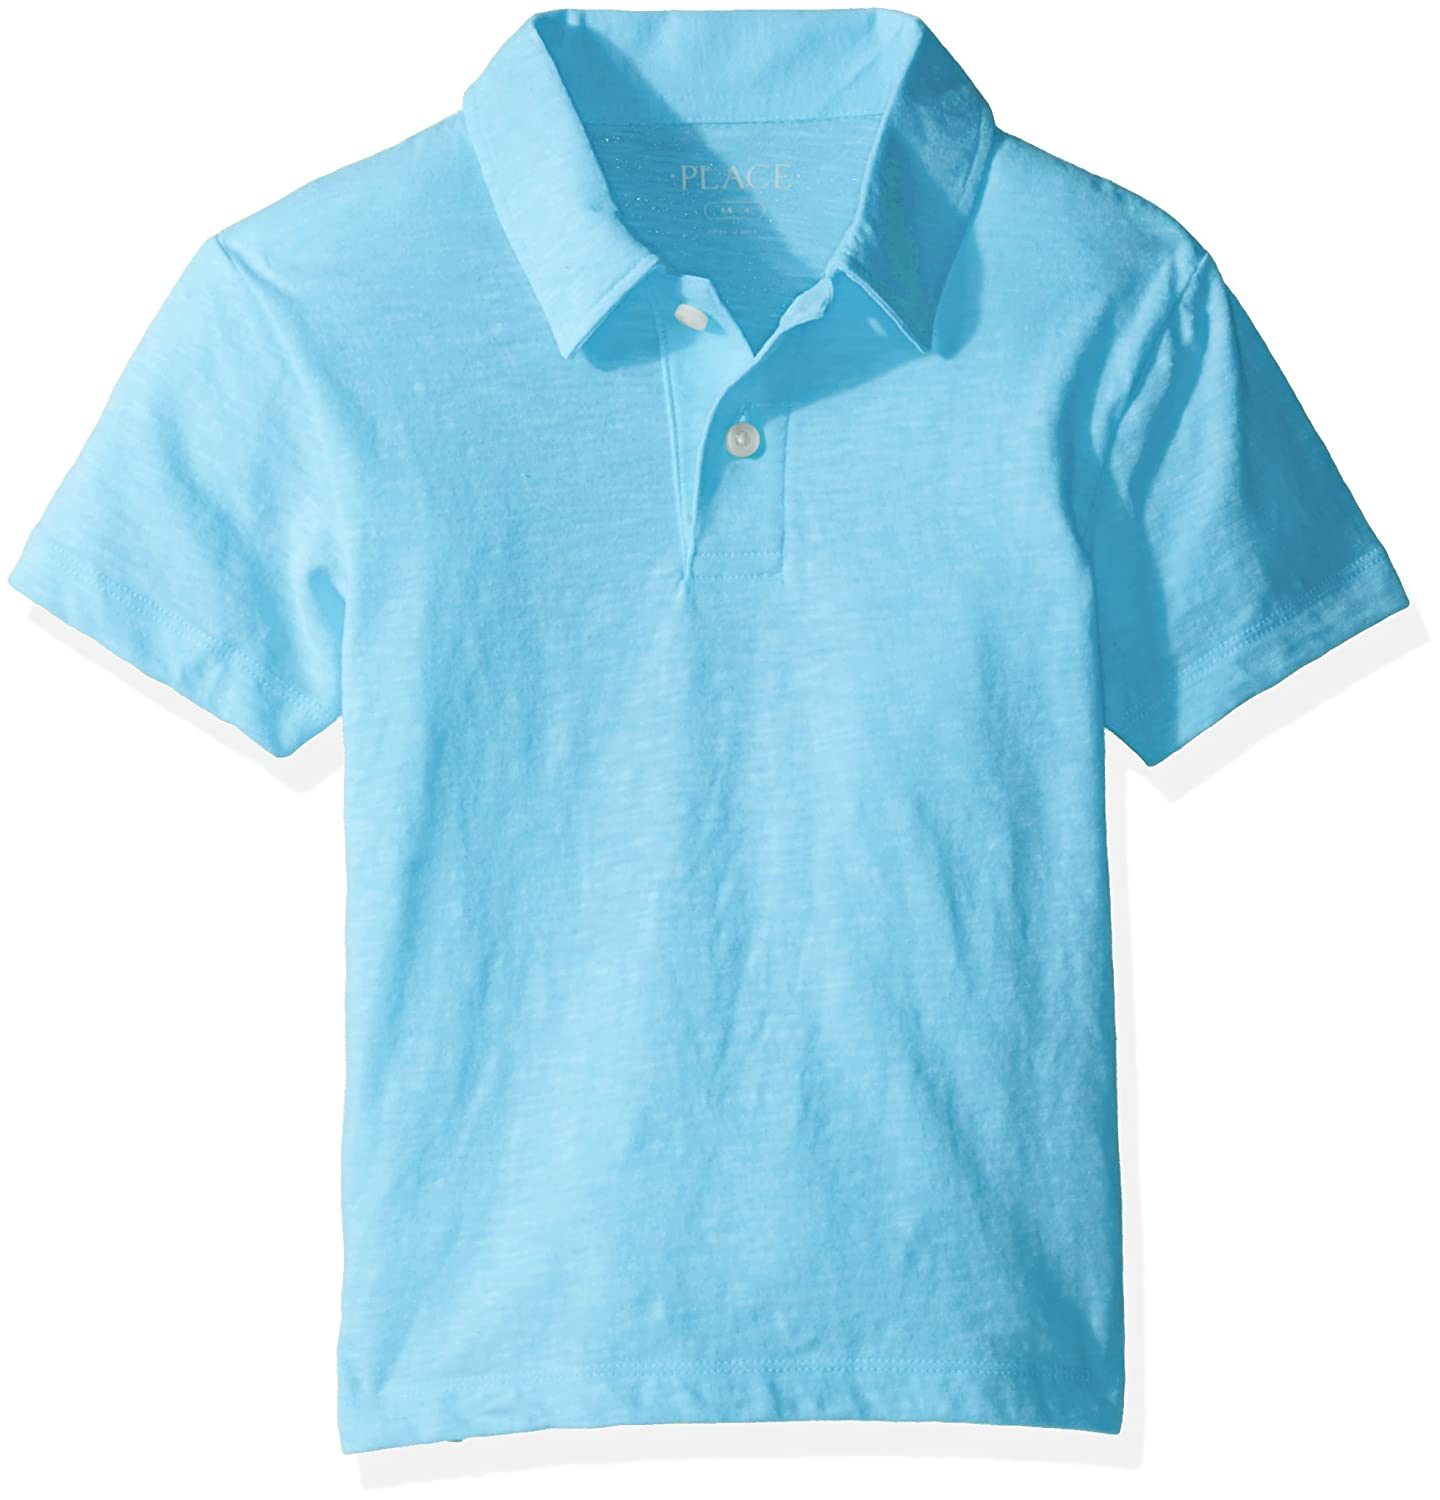 734985b9 The Children's Place Boys' Neon Polo Shirt